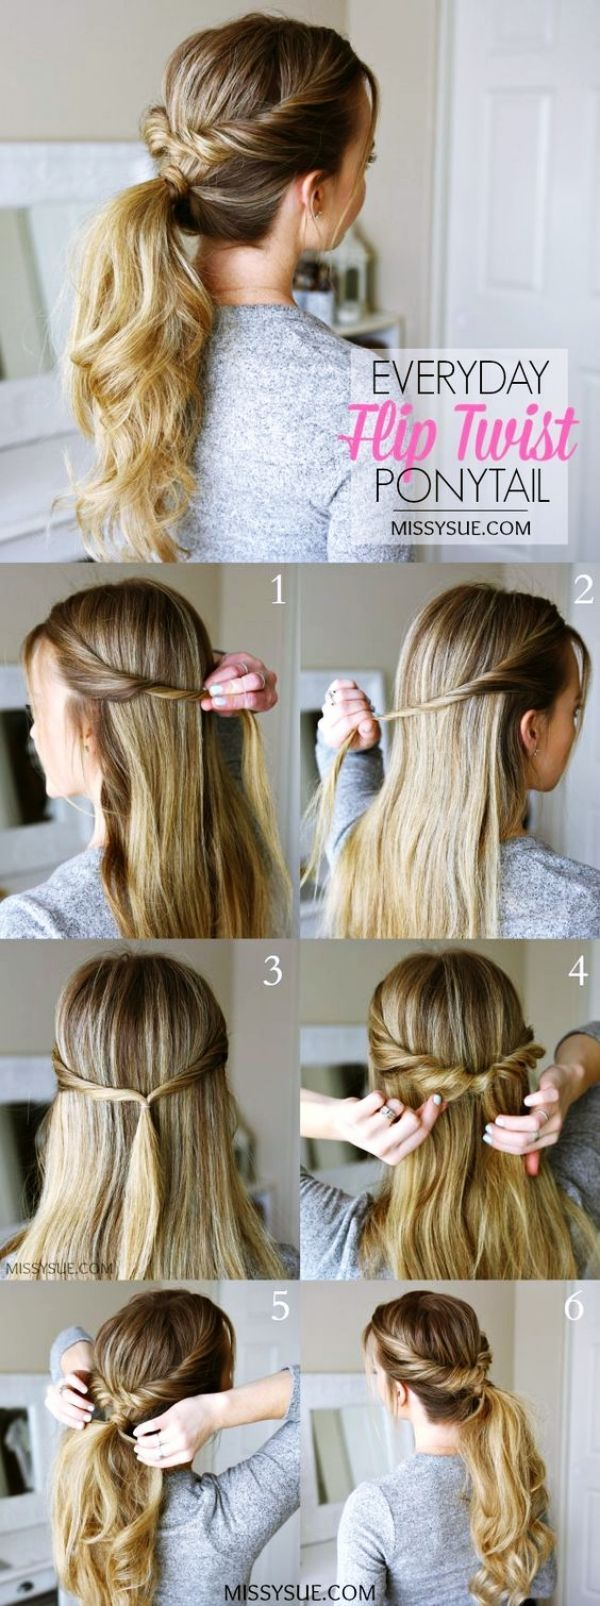 40 quick self hairstyles for working moms | hairstyle | long